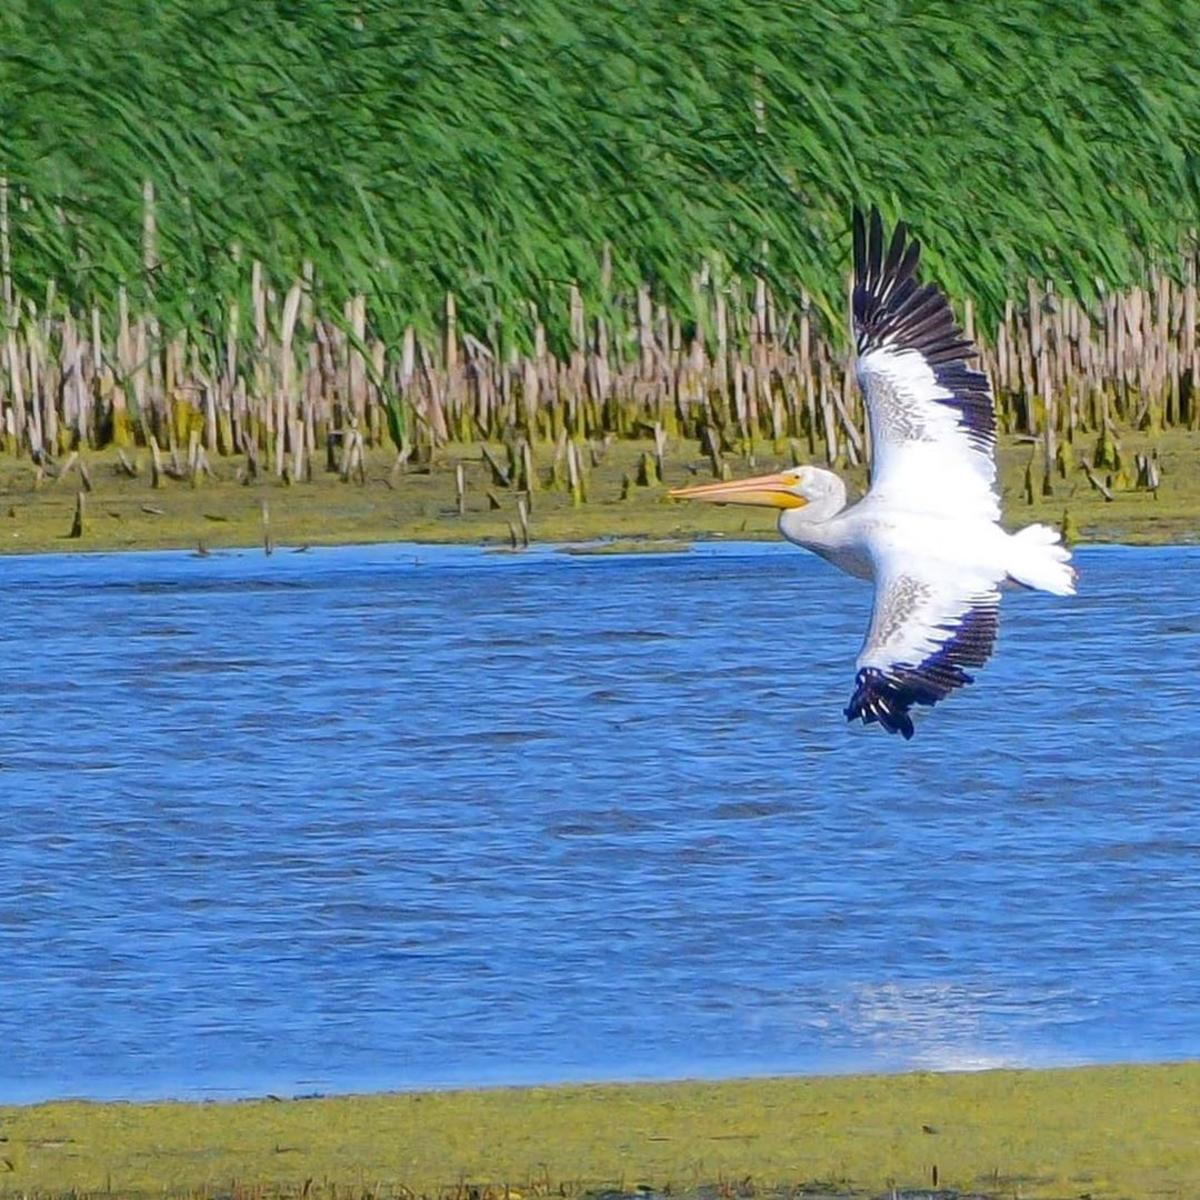 American White Pelican flying over the water of Shiawassee National Wildlife Refuge